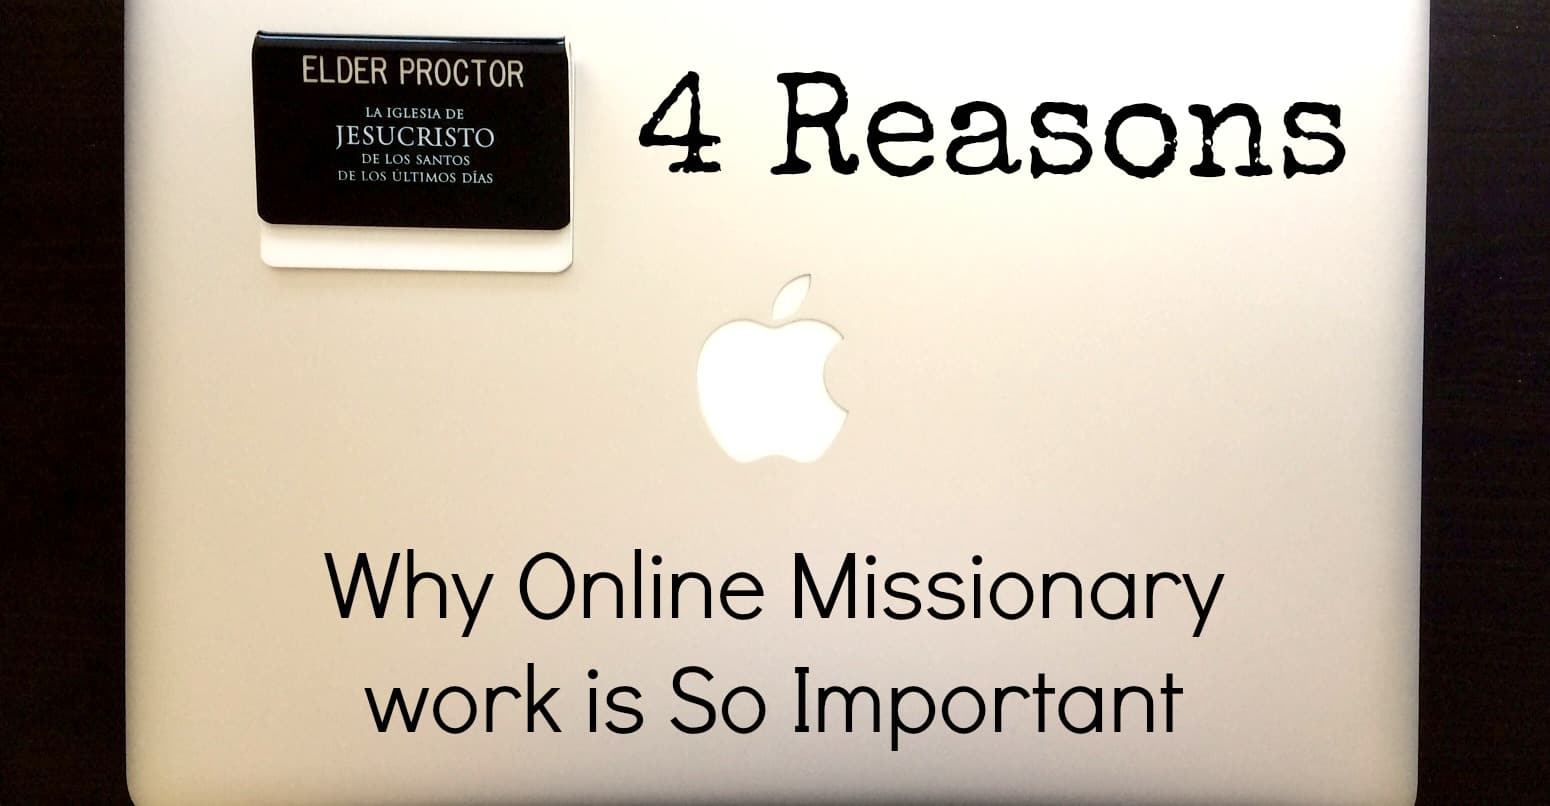 4 reasons why online missionary work is so important - the